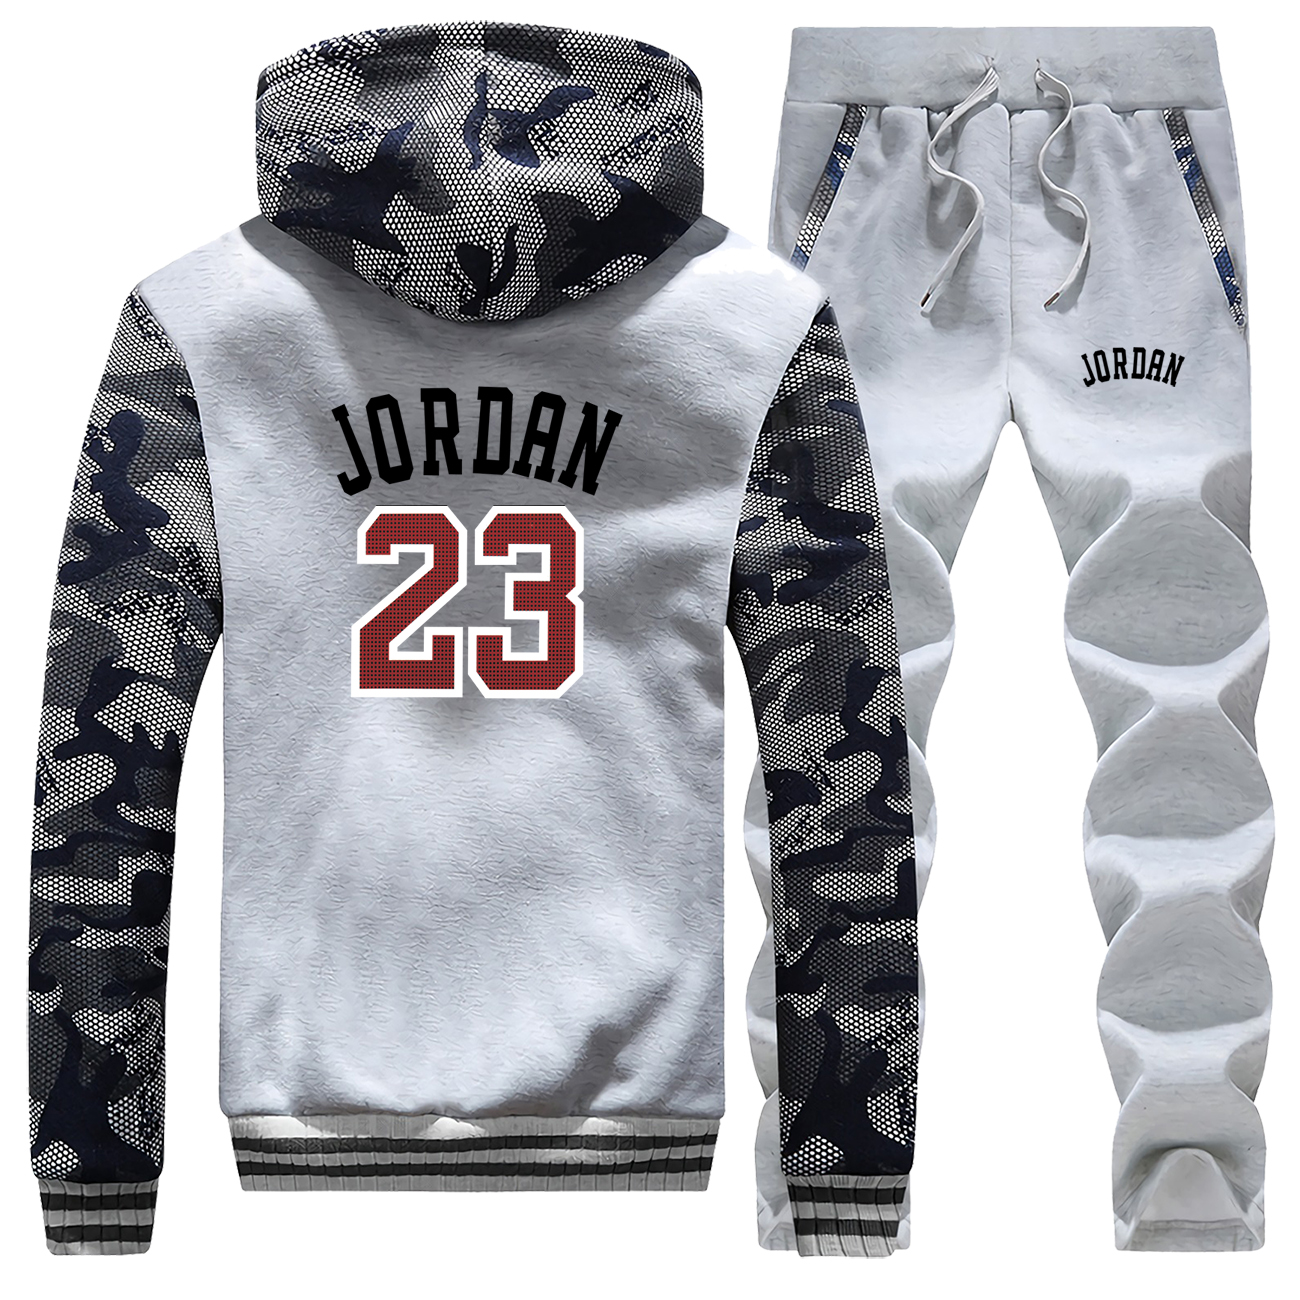 Jordan 23 Mens Tracksuit Set Male Warm Pants Brand Sweatshirt + Trousers Men Costume Hot Sports Clothes Male Tracksuit Men Suit